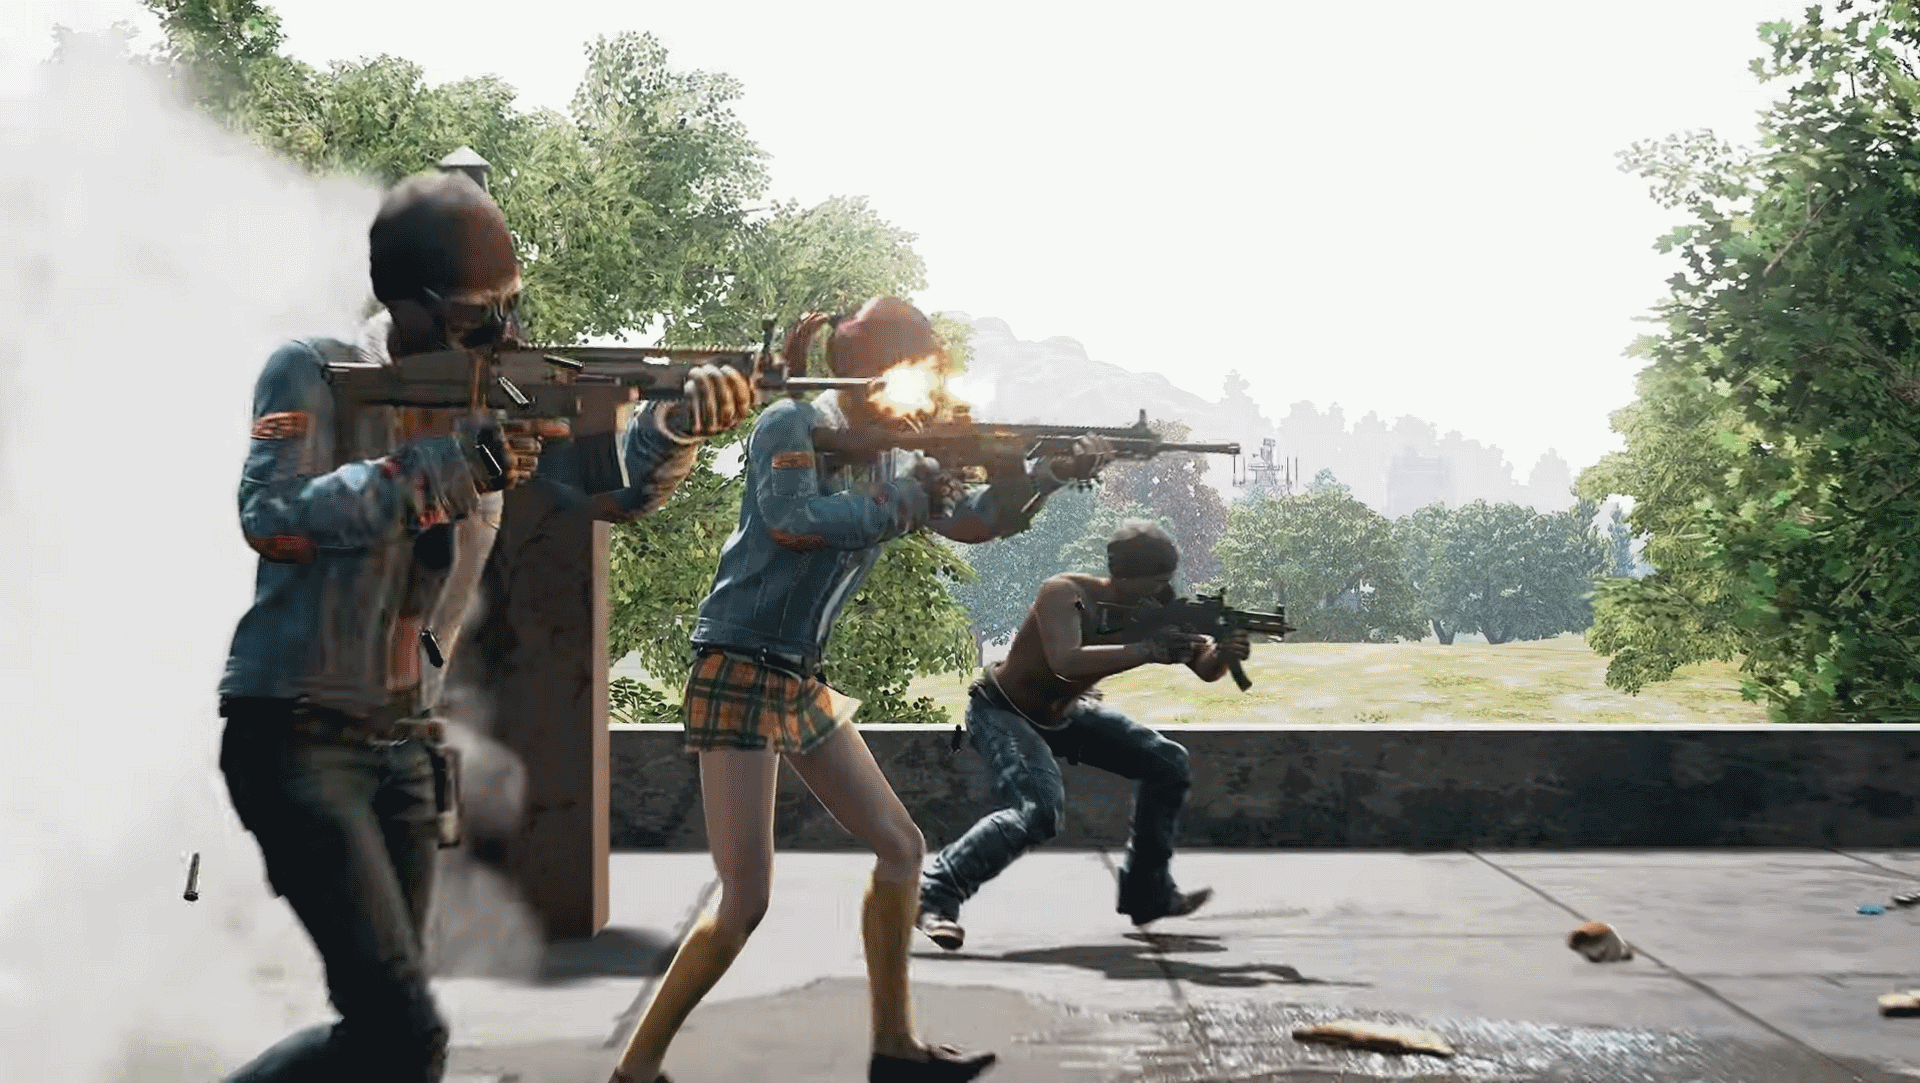 Several players fire guns on a rooftop - The best launch options for PUBG